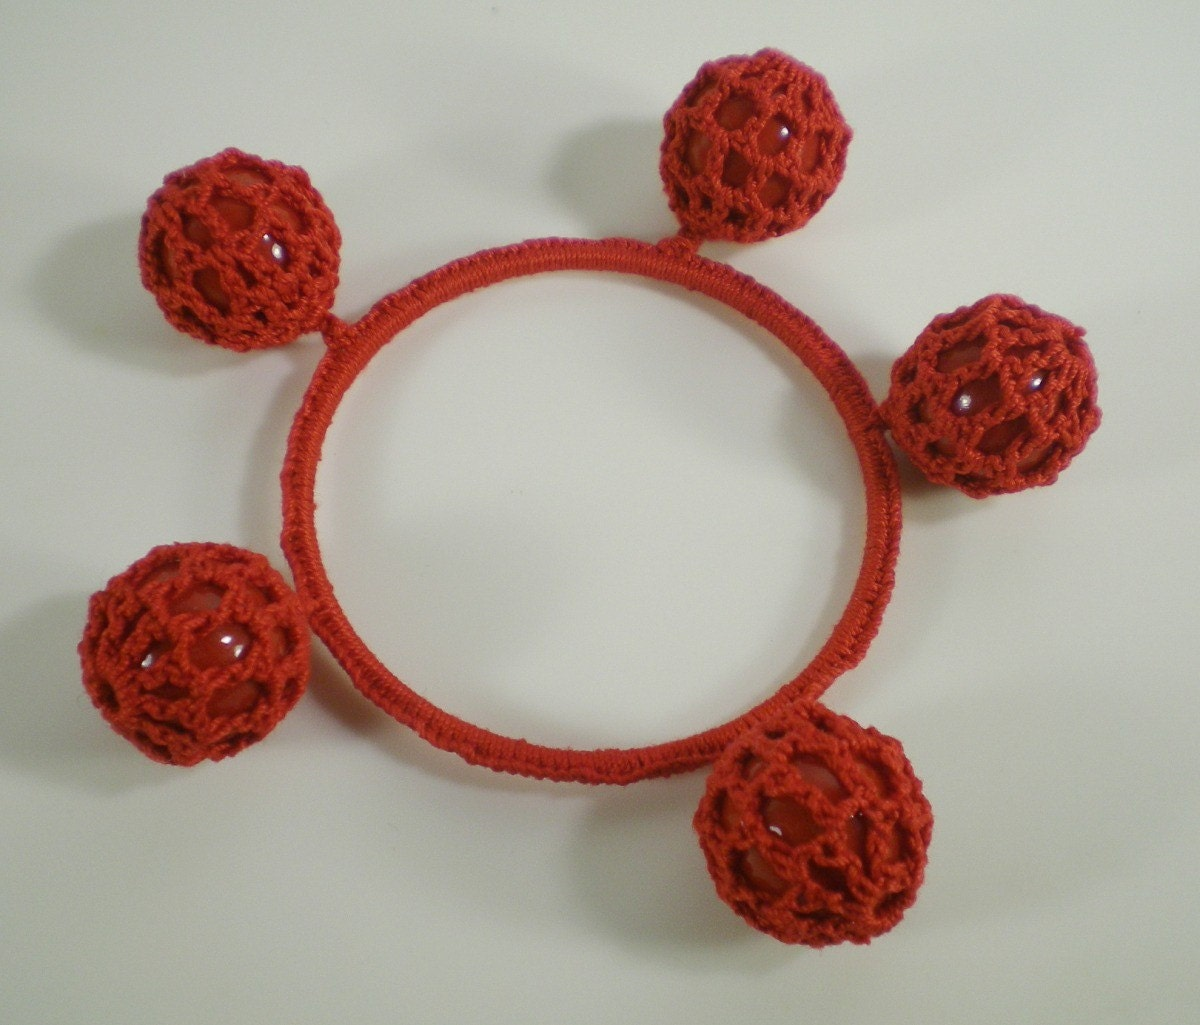 Red Crochet Bubble Cotton Bangle Bracelet by paleodeux on Etsy from etsy.com